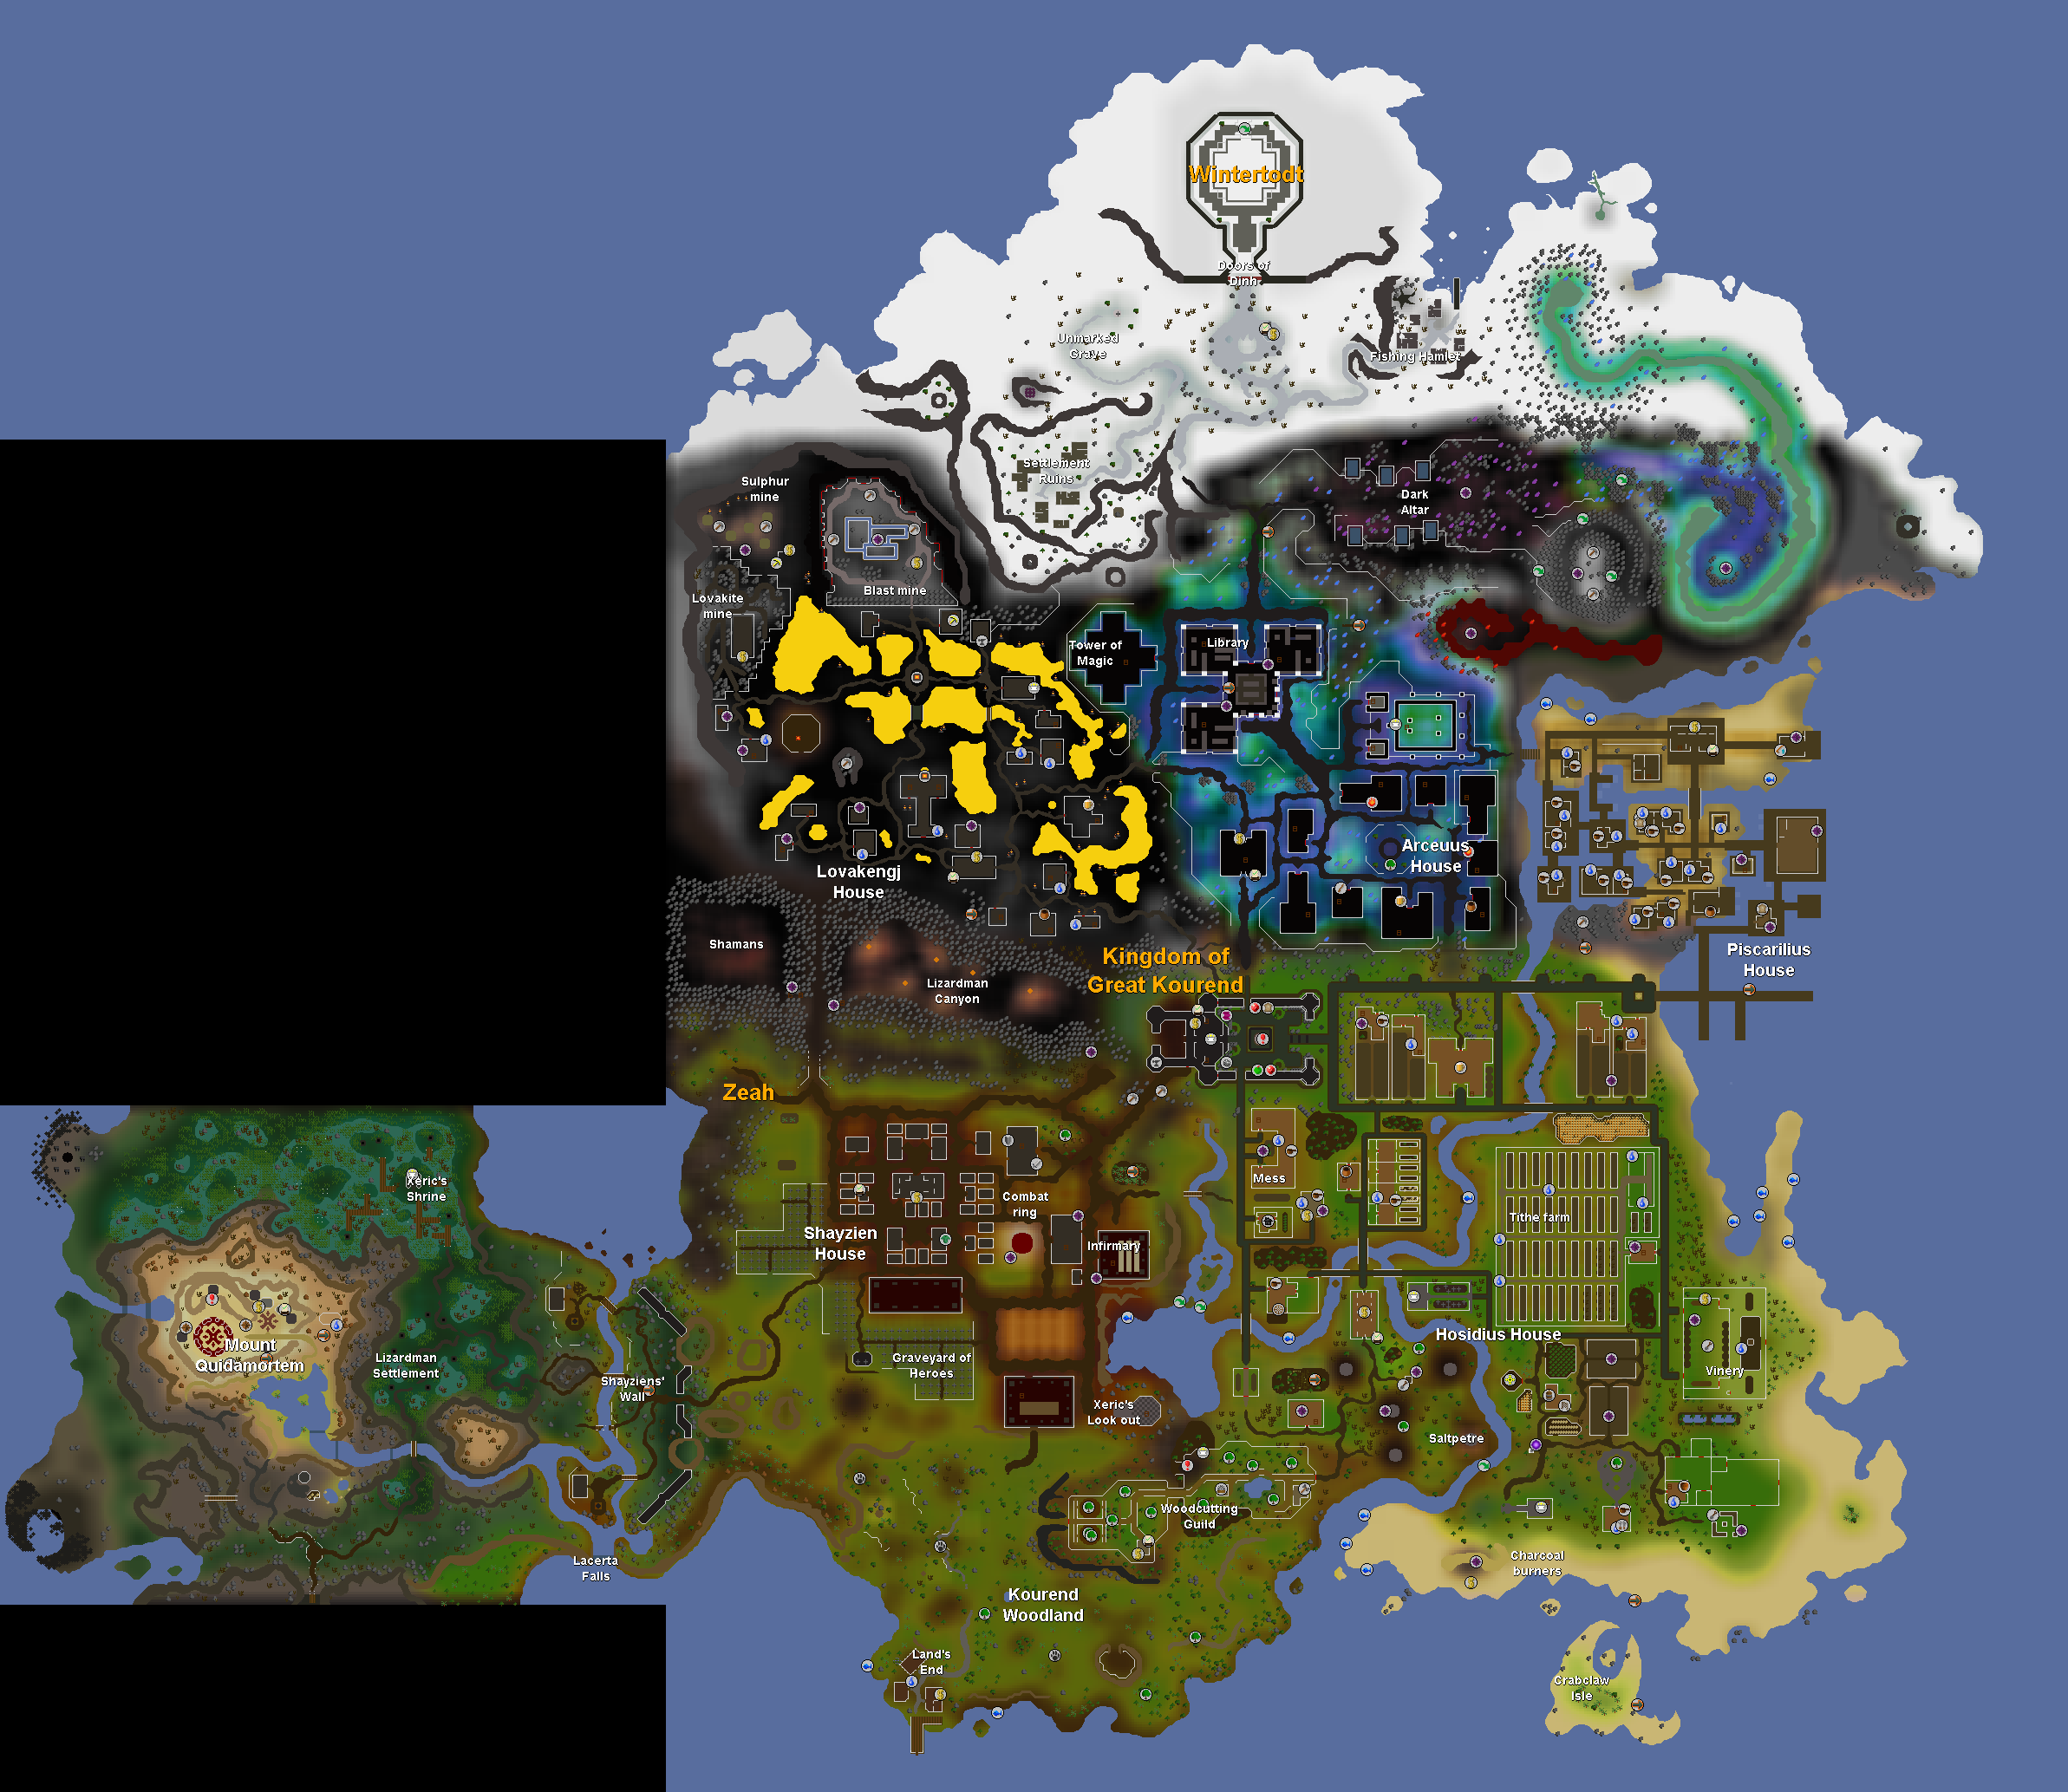 Image zeah mapg old school runescape wiki fandom powered by 1755 january 4 2017 gumiabroncs Gallery